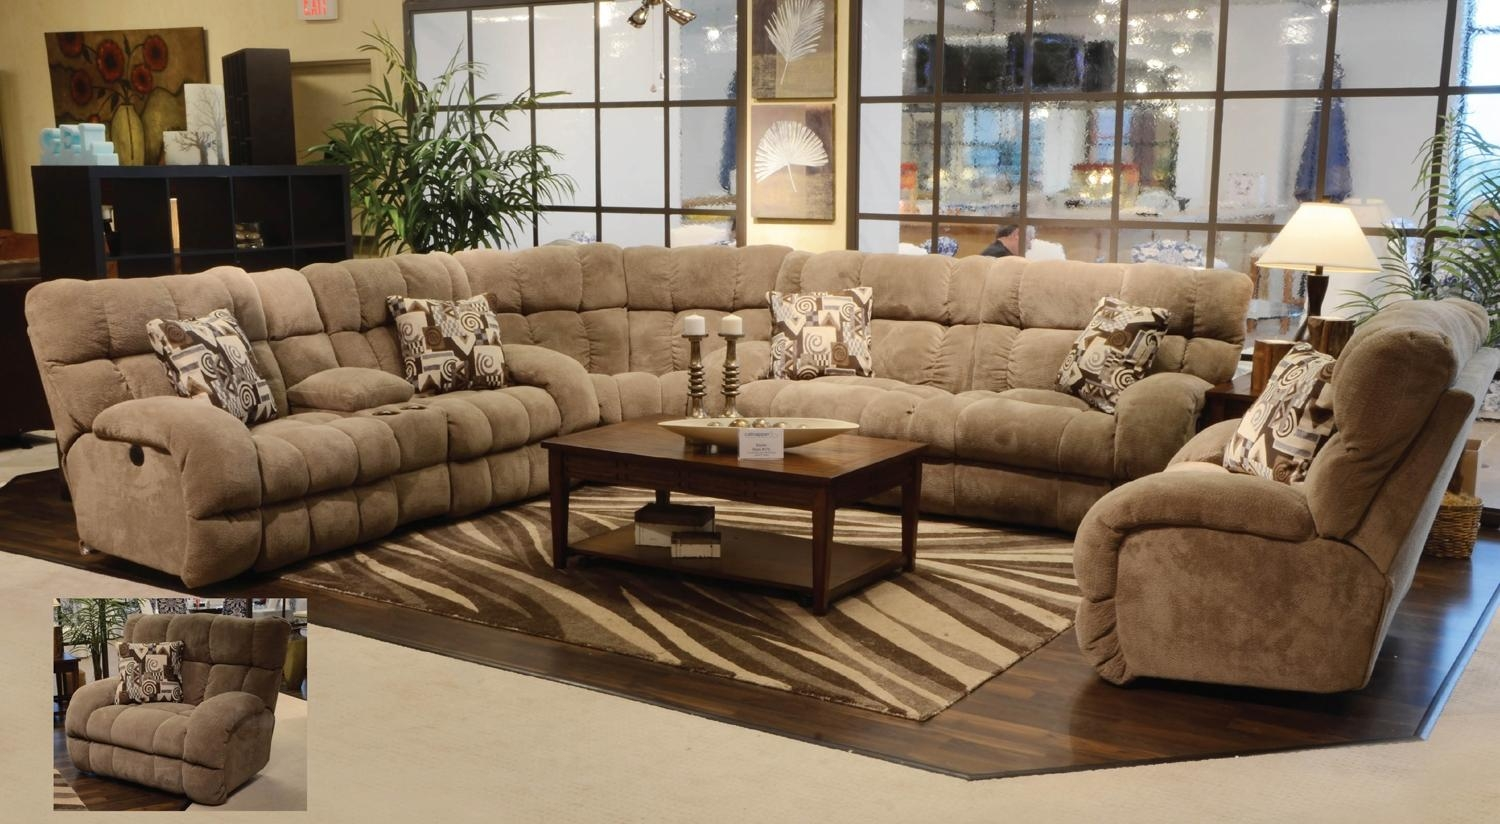 Sofas Center : Large Sectional Sofas With Chaise Extra Wilmington For Sectional With Large Ottoman (Image 13 of 20)